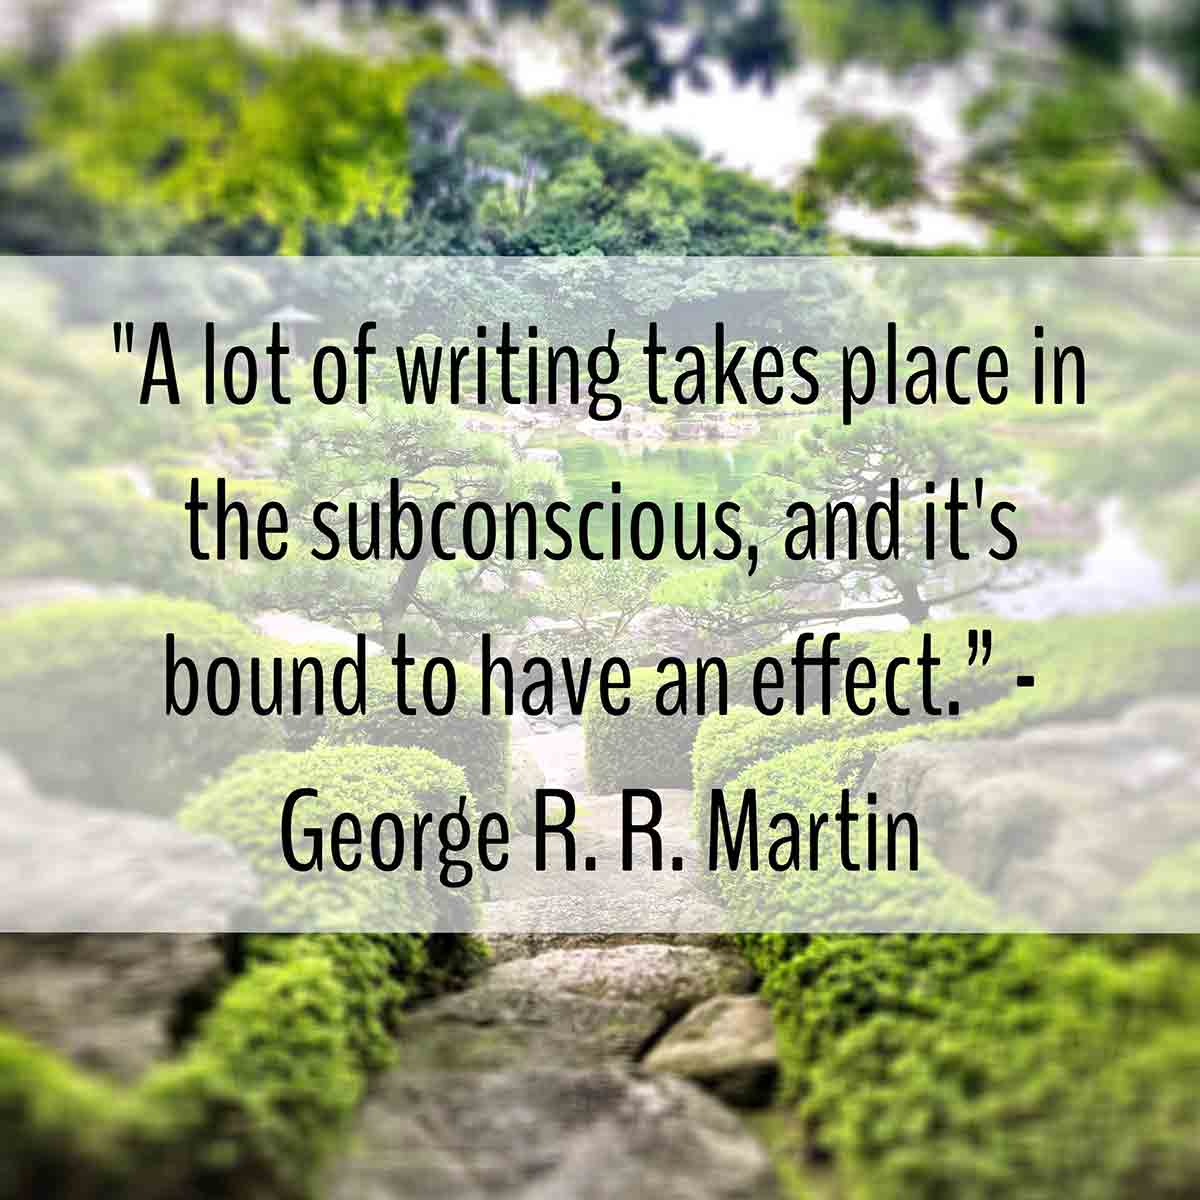 a lot of writing takes place in the subconscious, and it's bound to have an effect